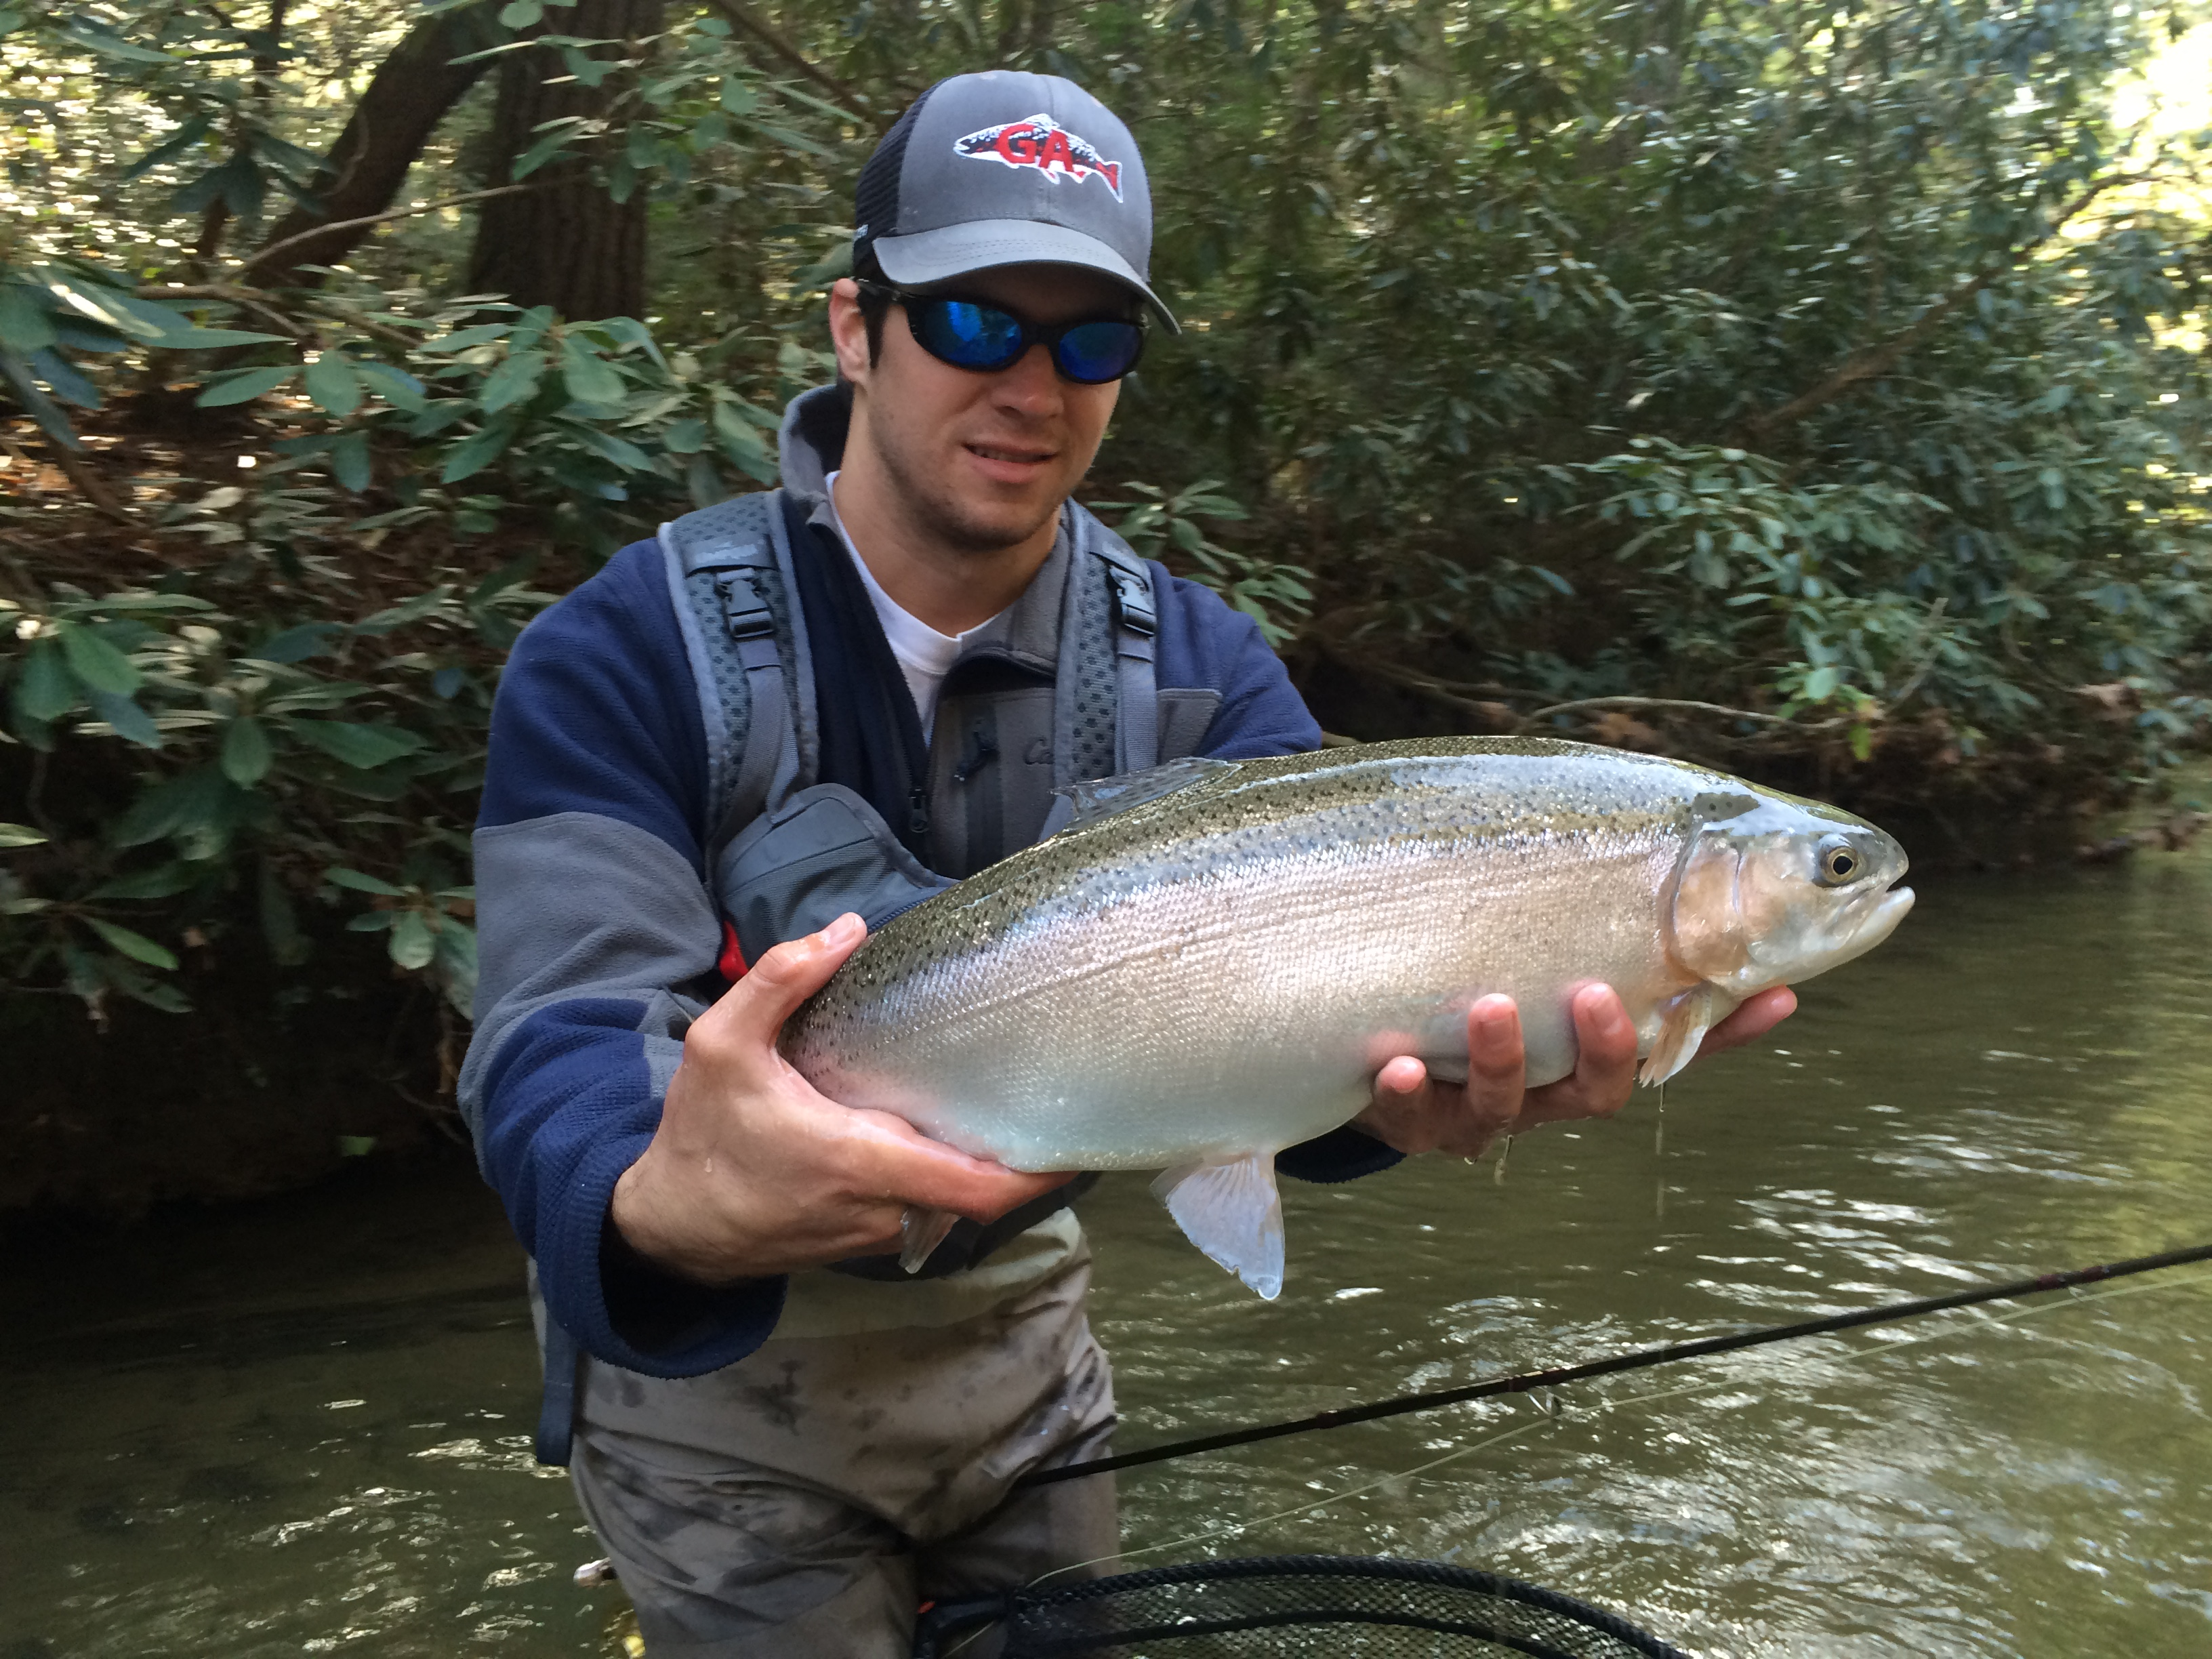 Richie sokolowski blackhawk fly fishing for Fly fishing north georgia